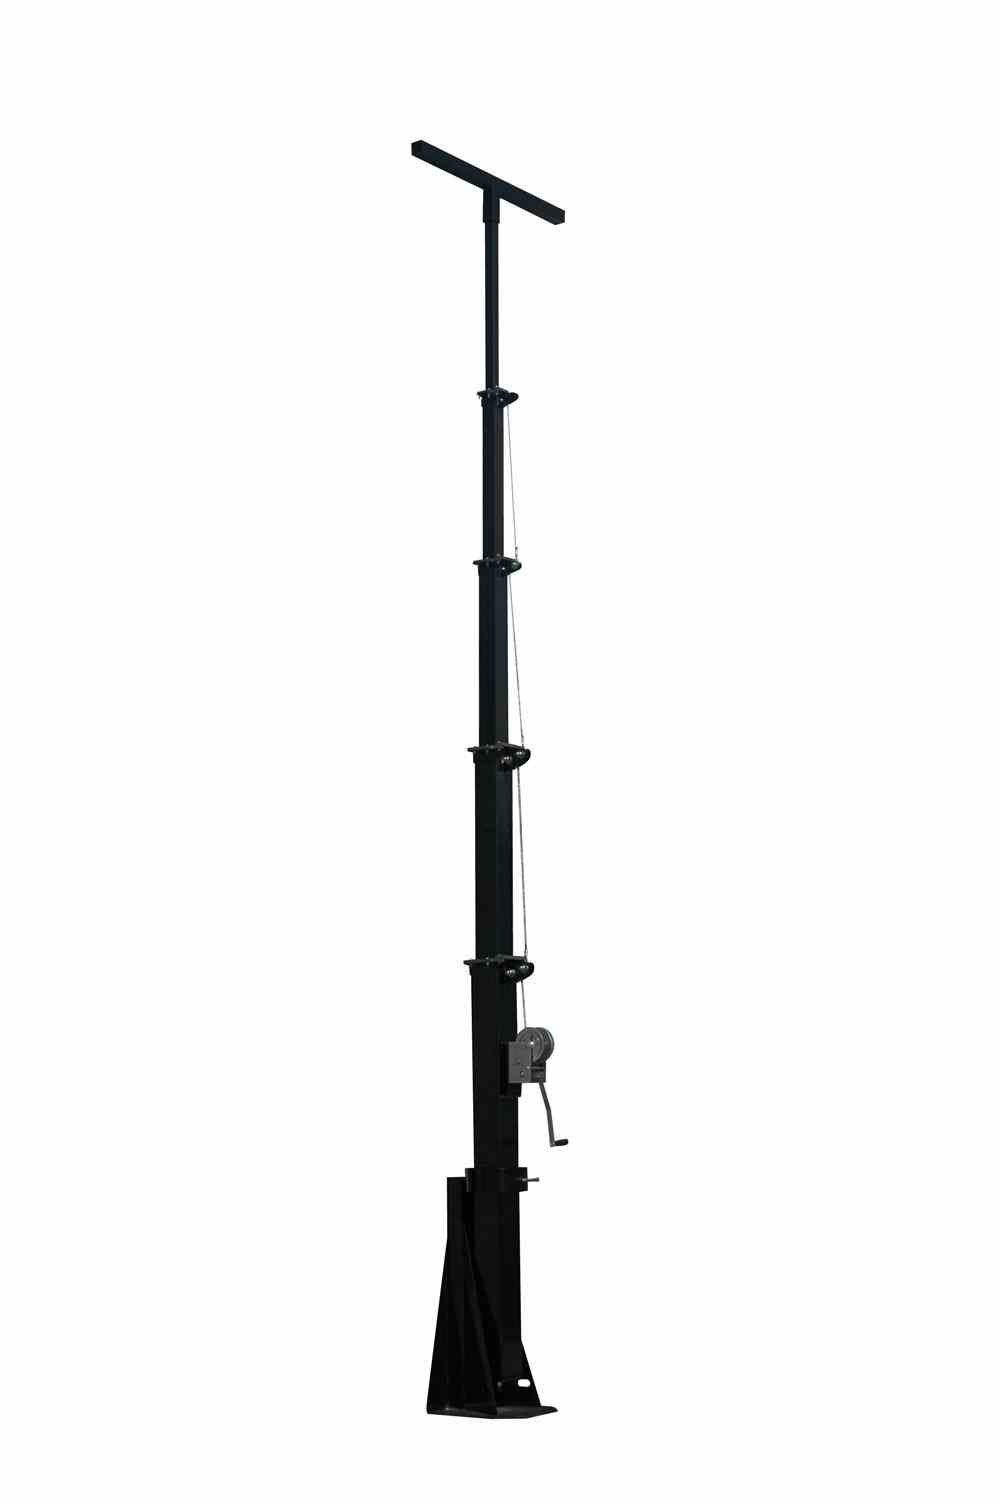 20' Five Stage Telescoping Light Mast - Extends up to 20 Feet - Collapses Down to 6.5 Feet